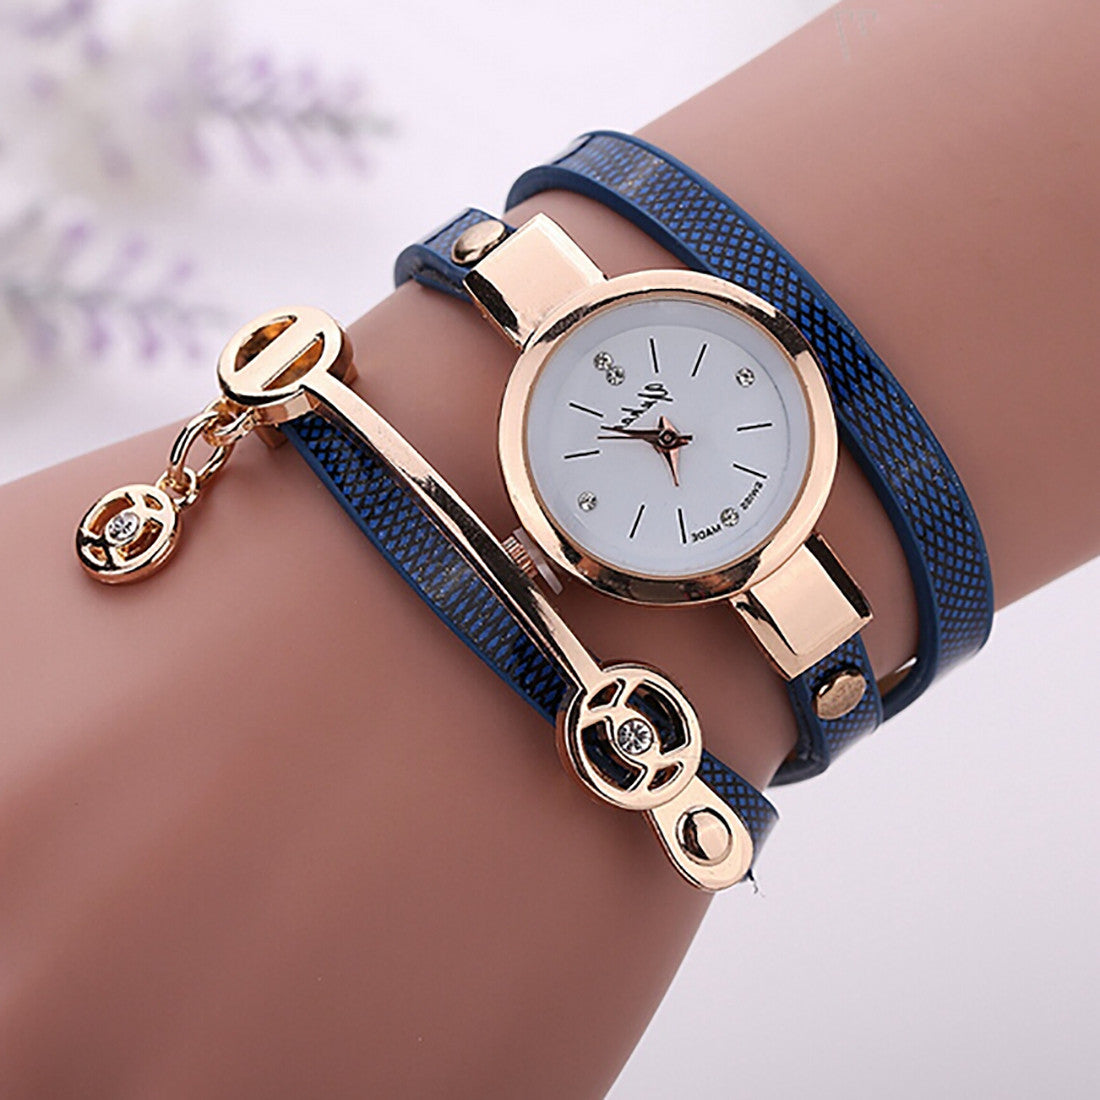 2016 Fashion New Summer Style Leather Casual Bracelet Watch Wristwatch Women Dress Watches Relogios Femininos Watch - Cerkos.com